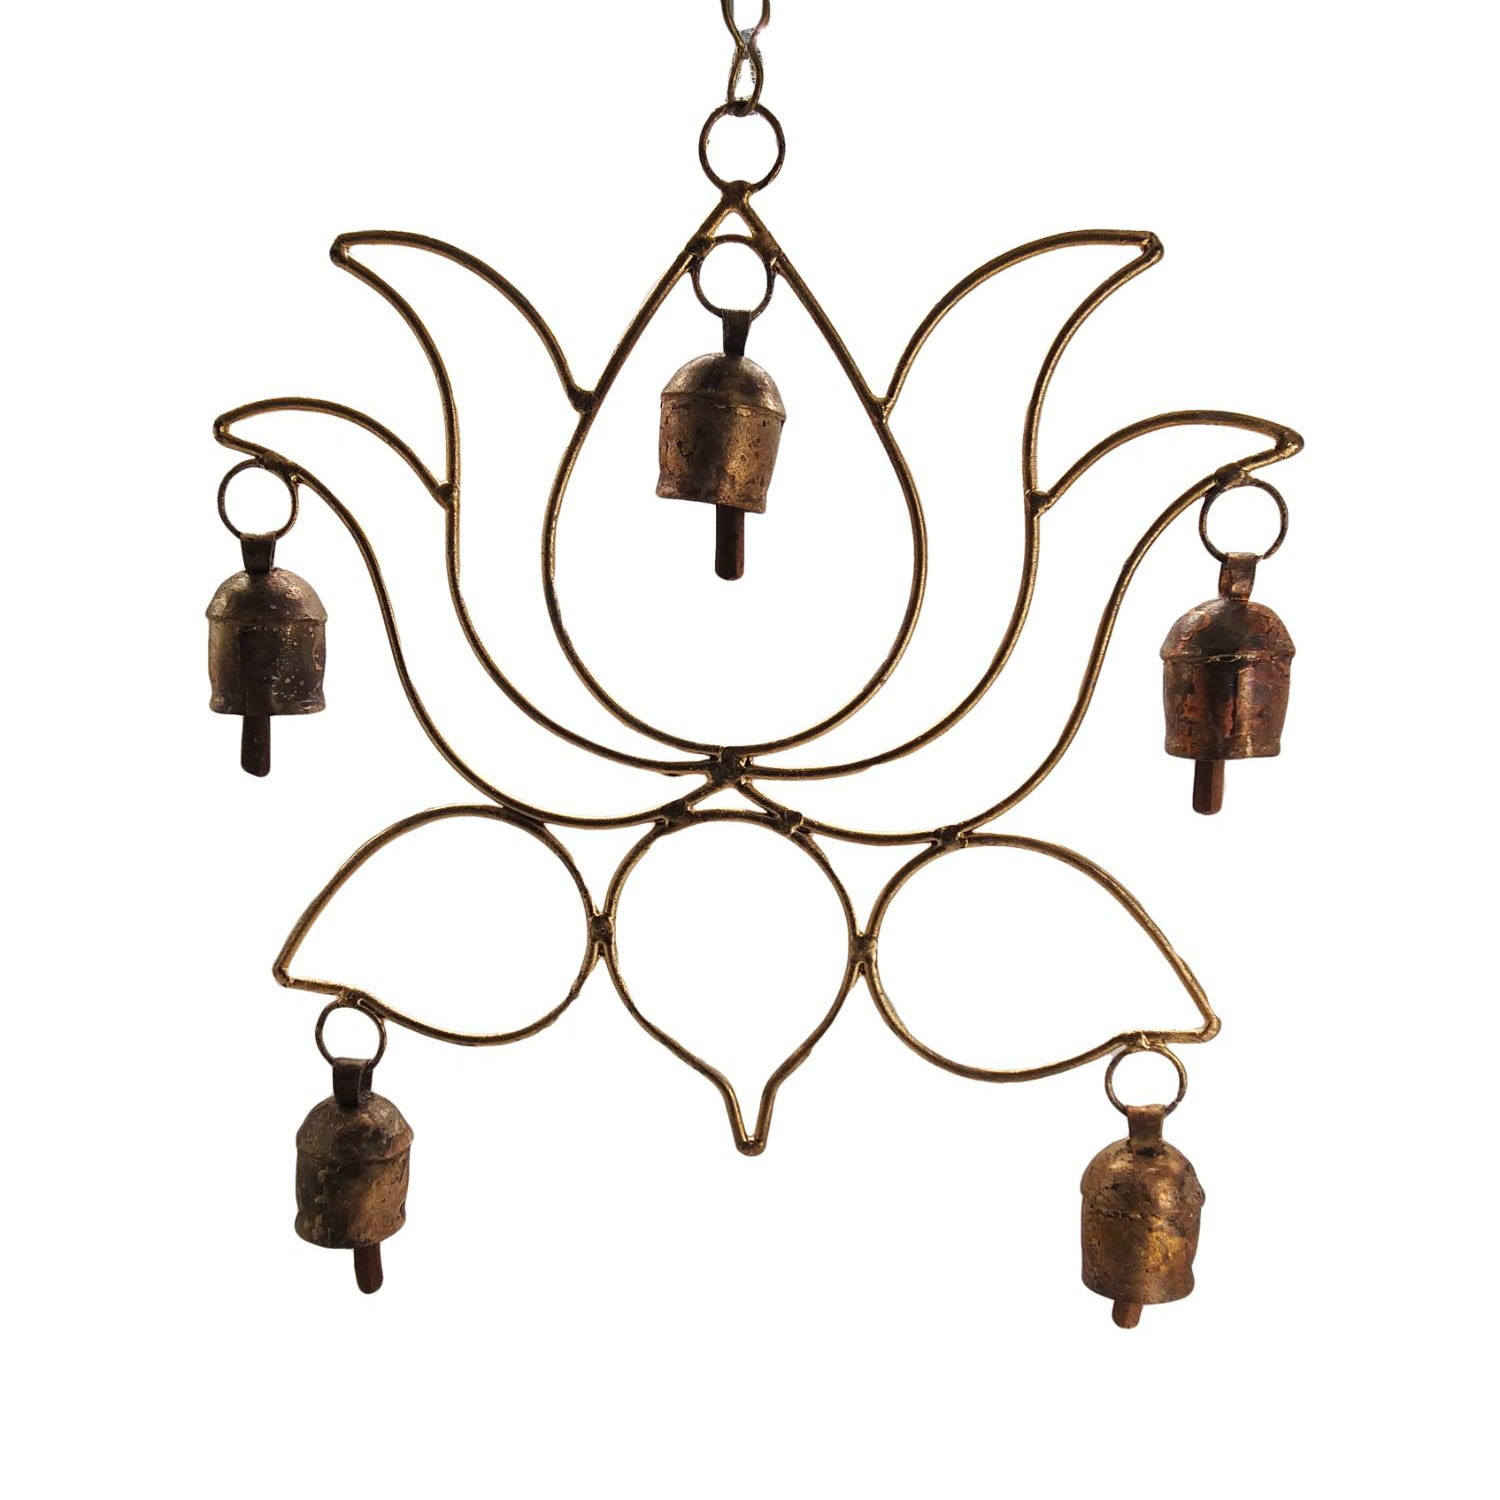 India Meets India Vintage Handmade Brass Wind Chime Hangings Antique Distressed Finish by Indian Artisans (5 Bells)